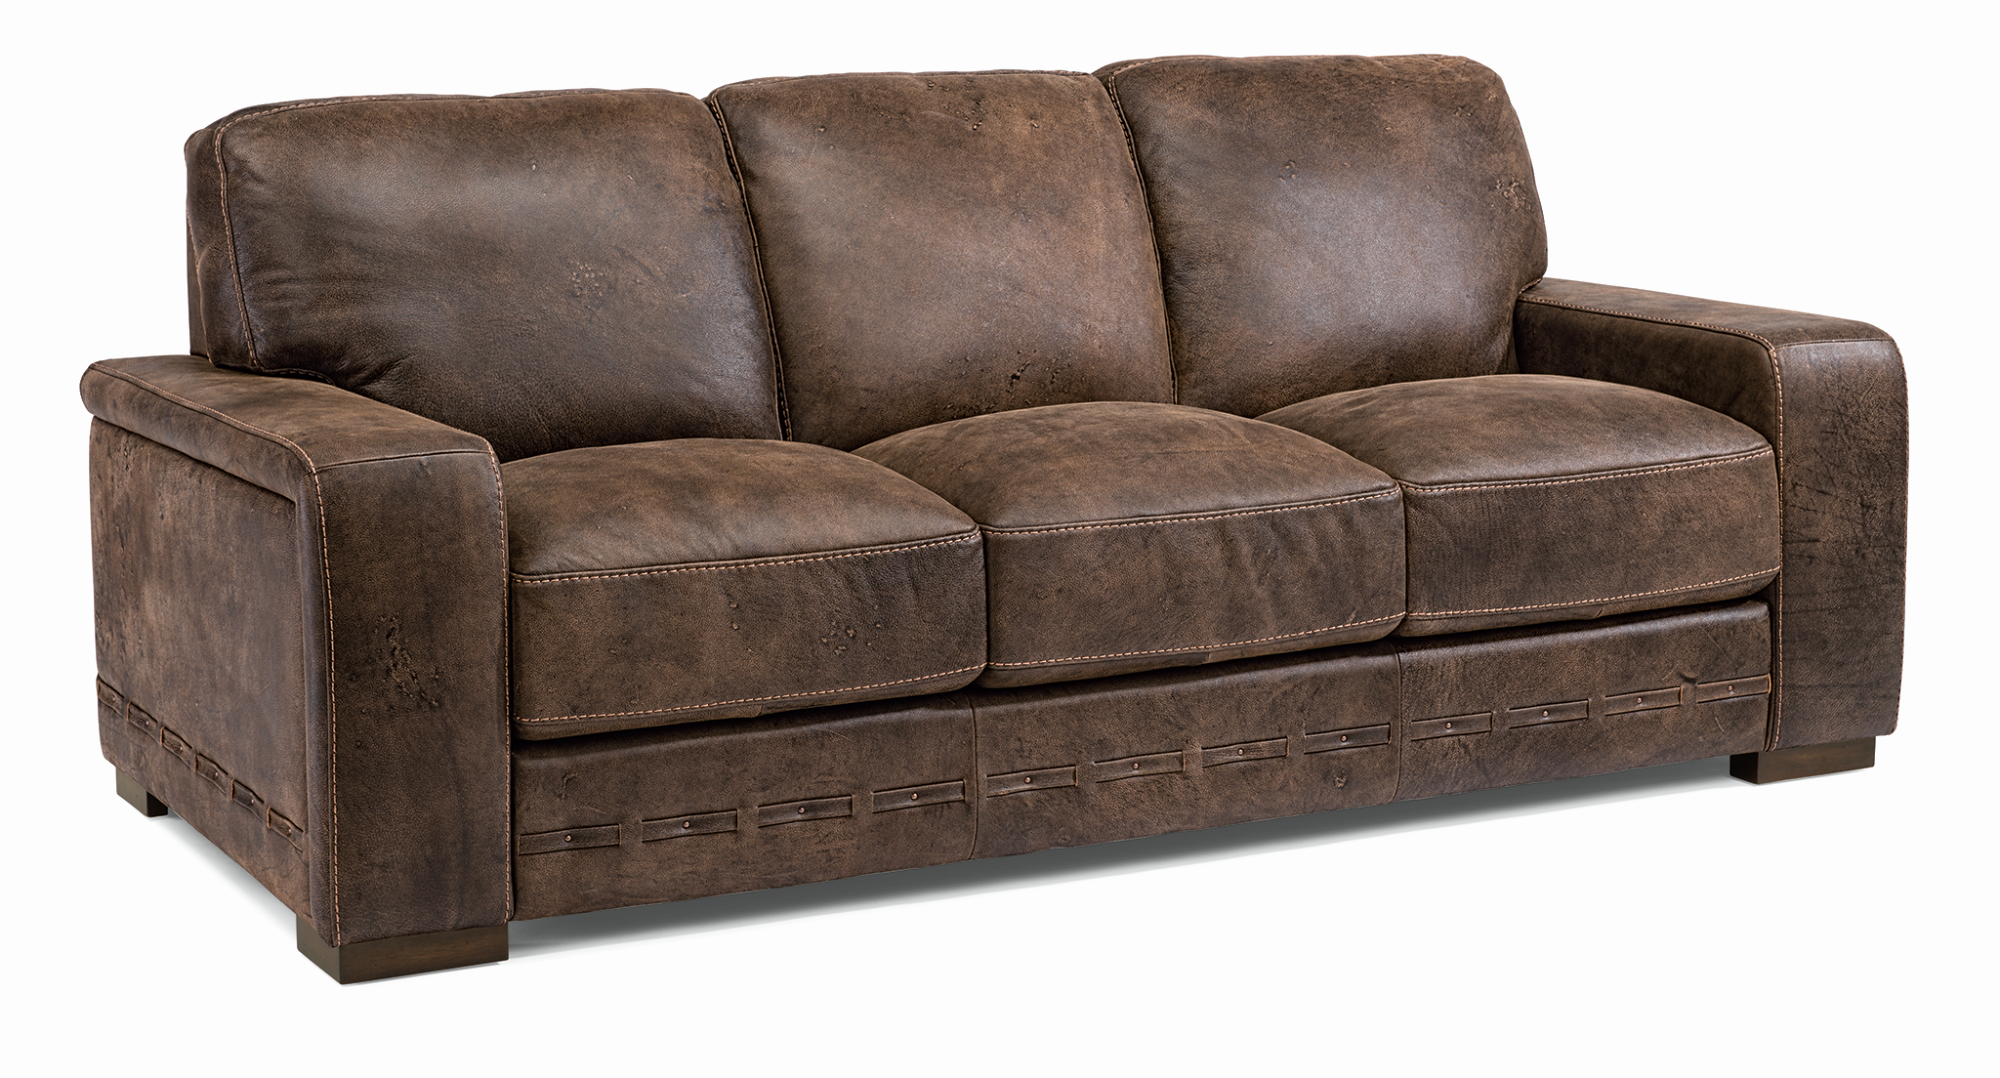 Inspirational Flexsteel Leather Sofa Pics Sofas And Loveseats Reclining Sofas And Sleepers Flexsteel Check More At Ht Leather Sofa Leather Sofa Furniture Sofa